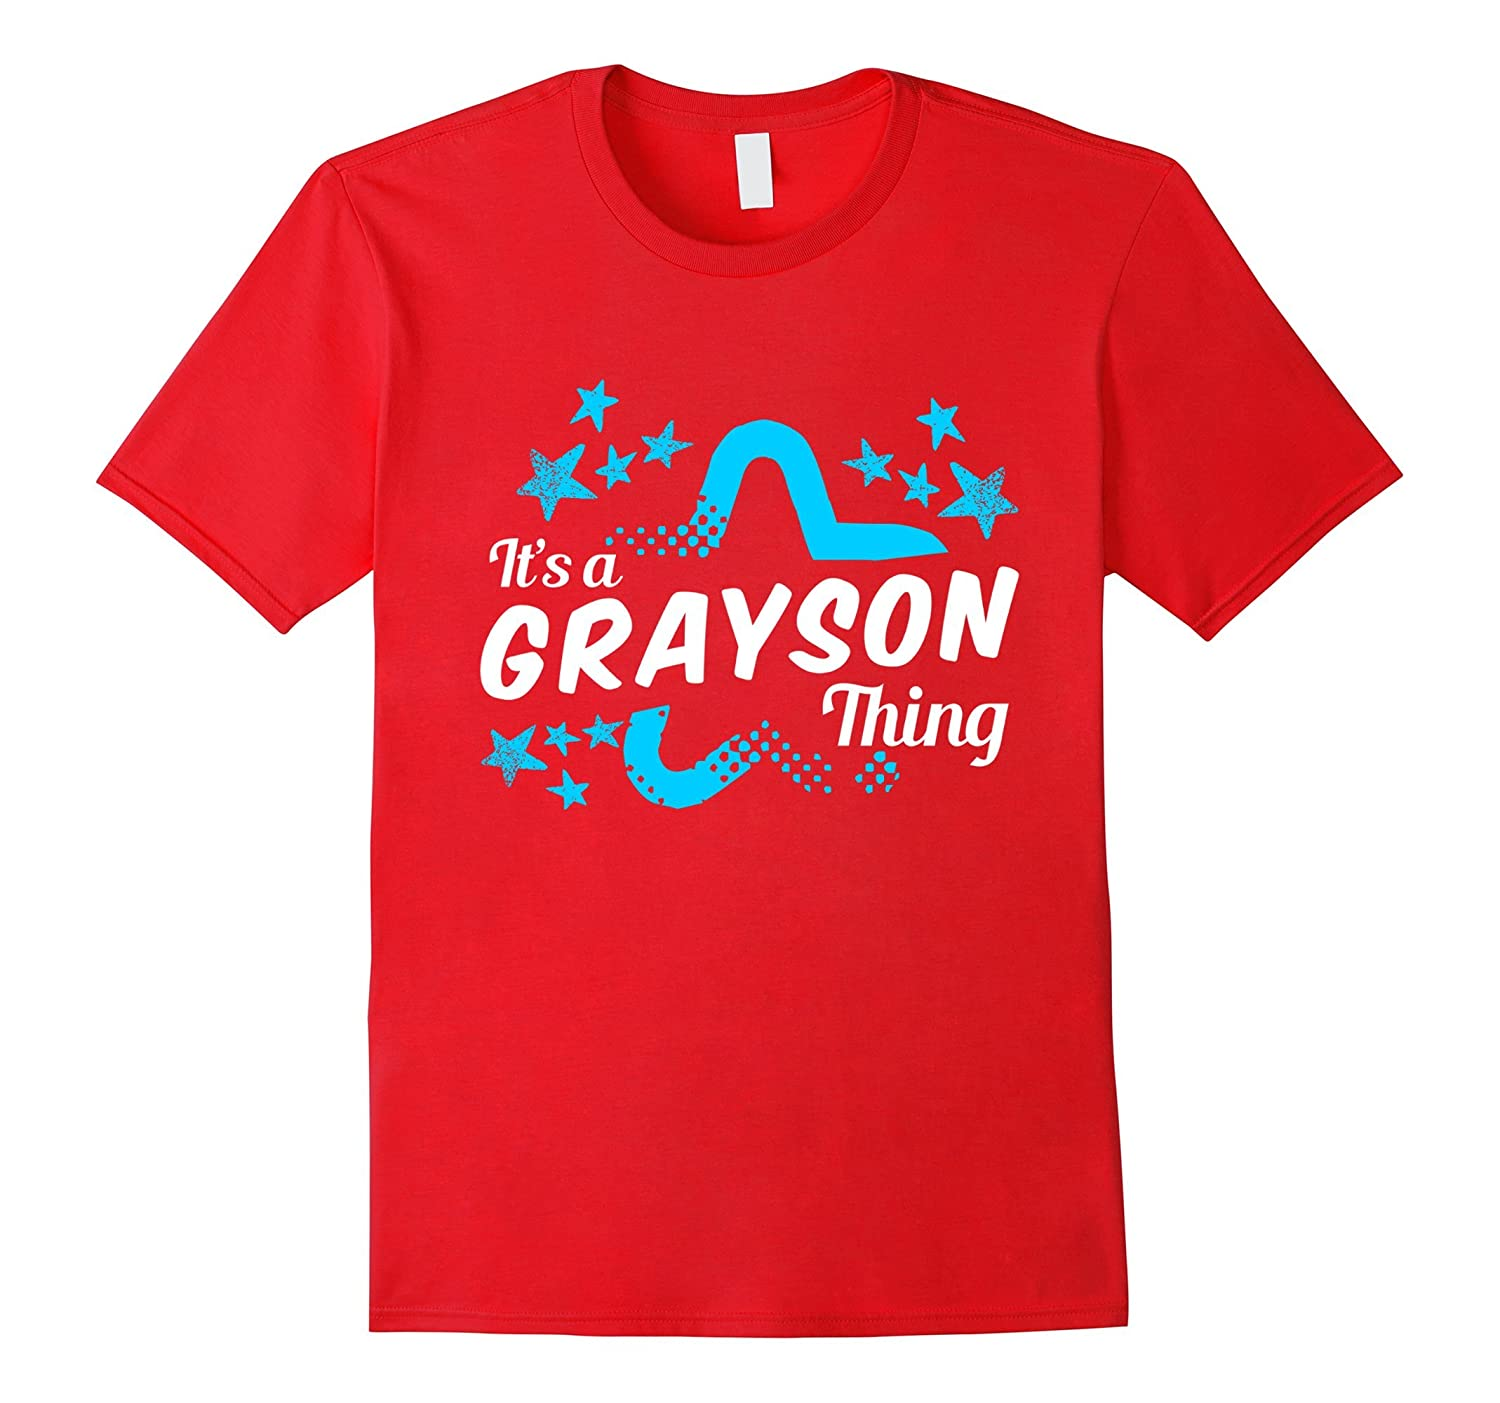 Funny It's A GRAYSON Thing T-Shirt For Men, Boys and Kids-FL